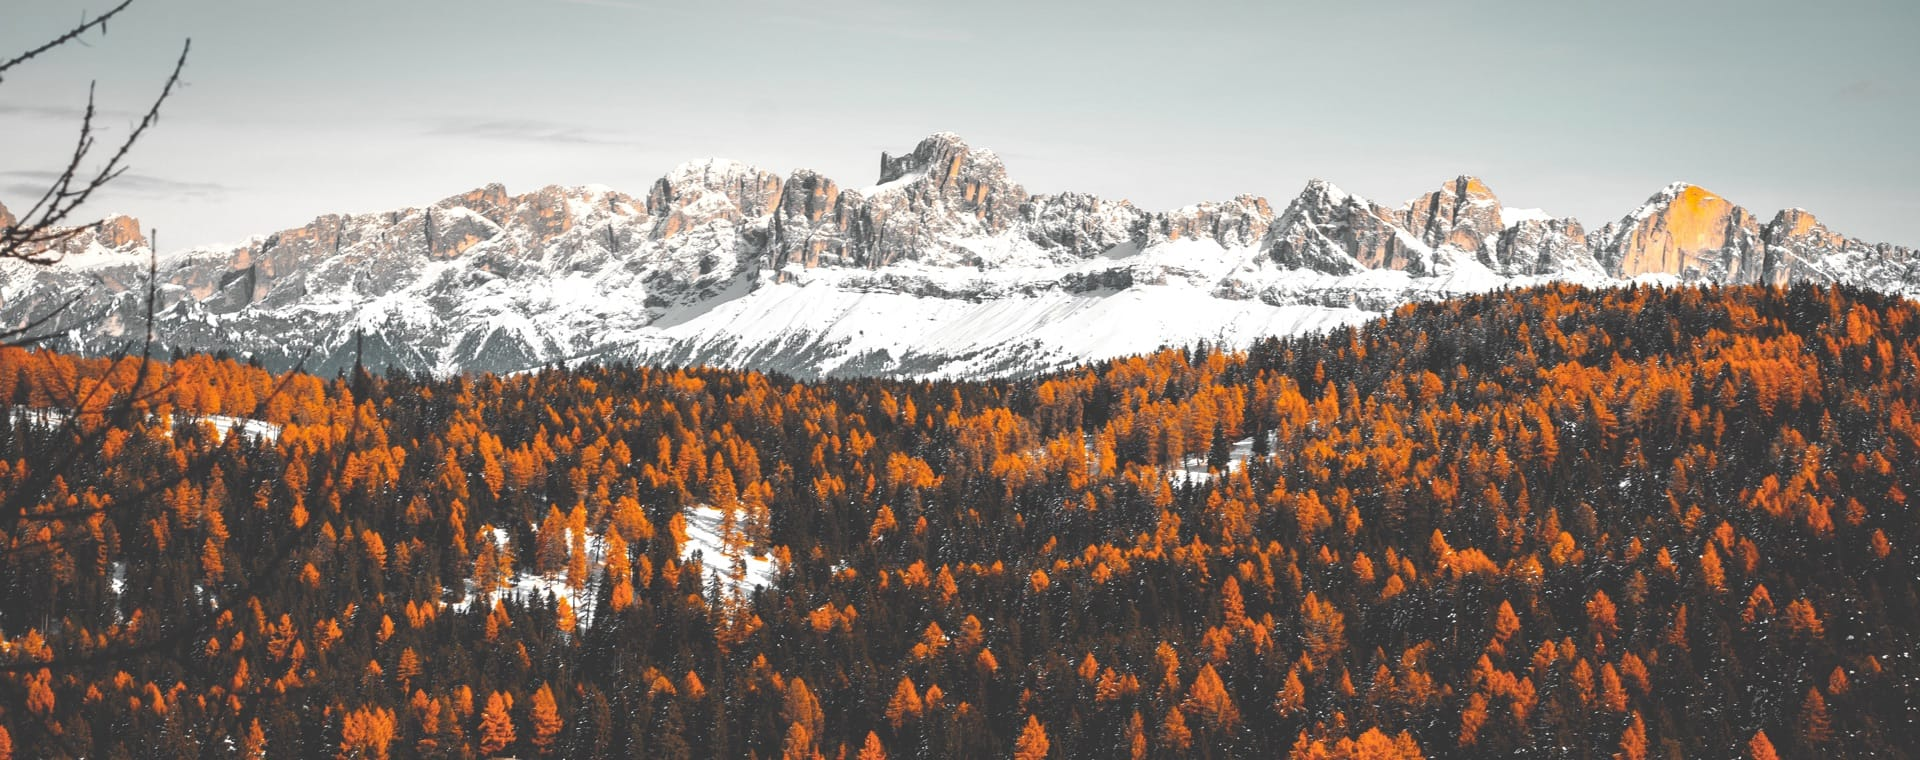 Autumn colours in the Dolomites